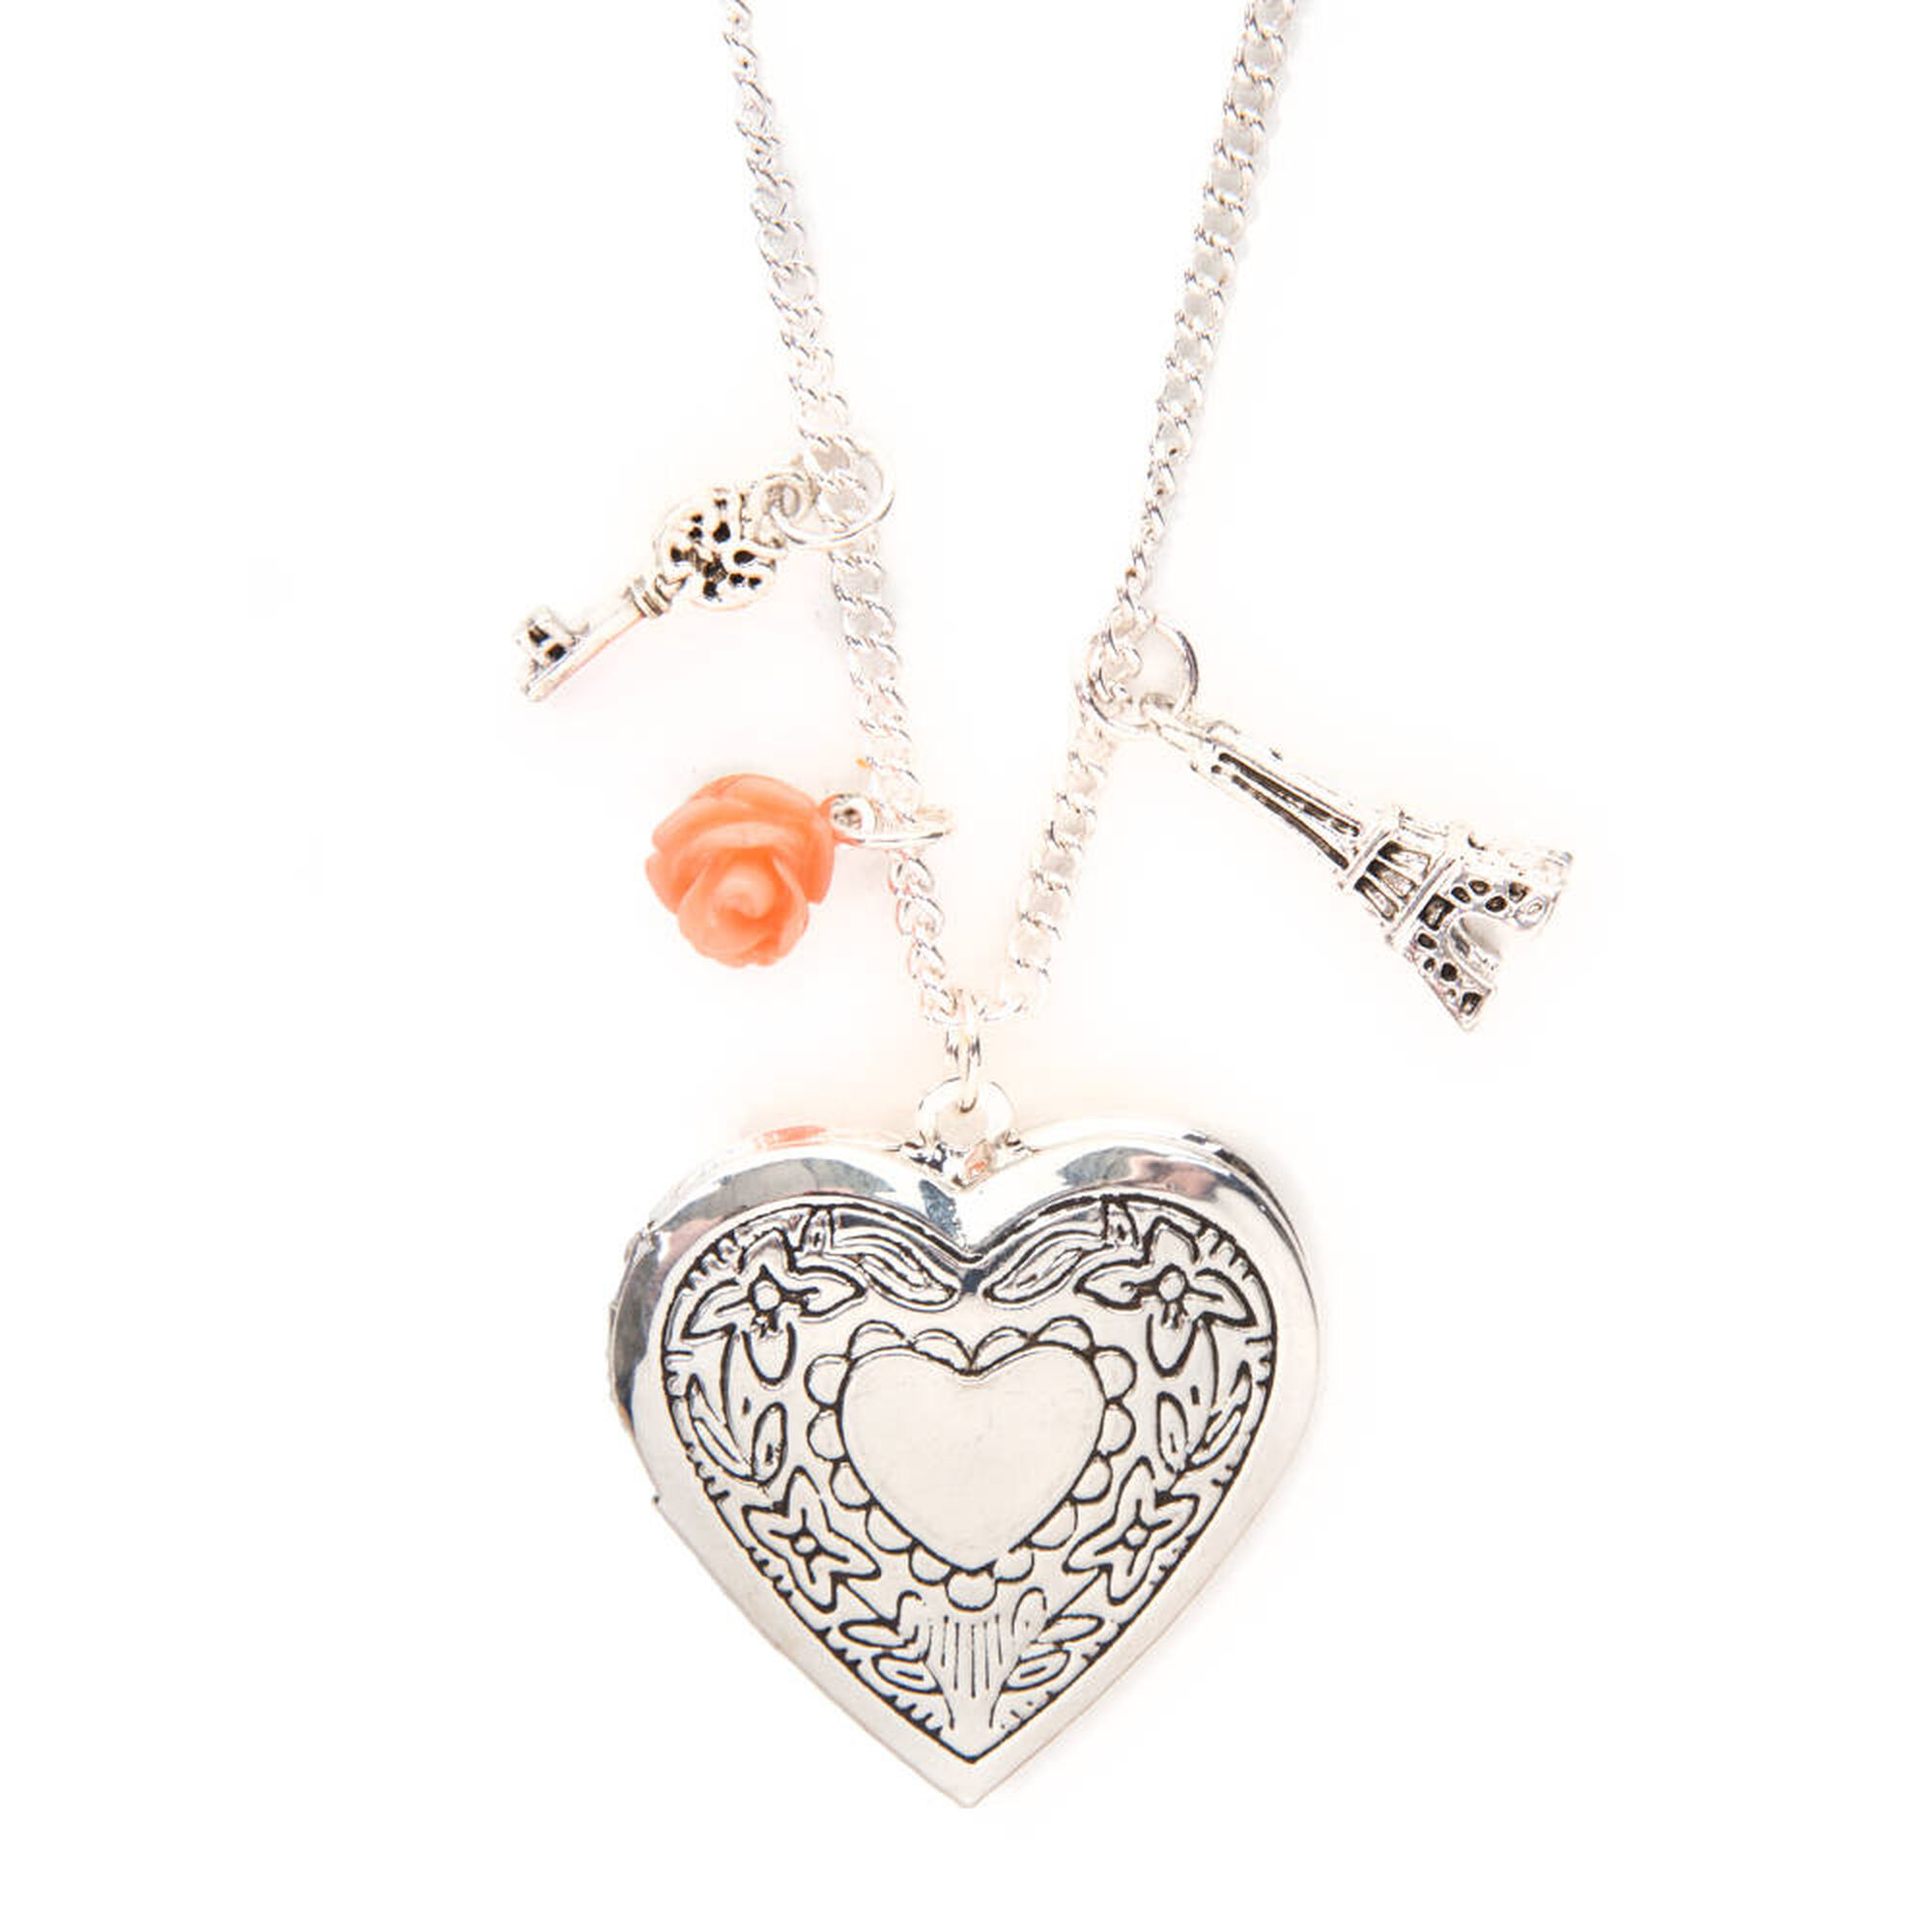 Silver Heart Locket and Charms Pendant Necklace